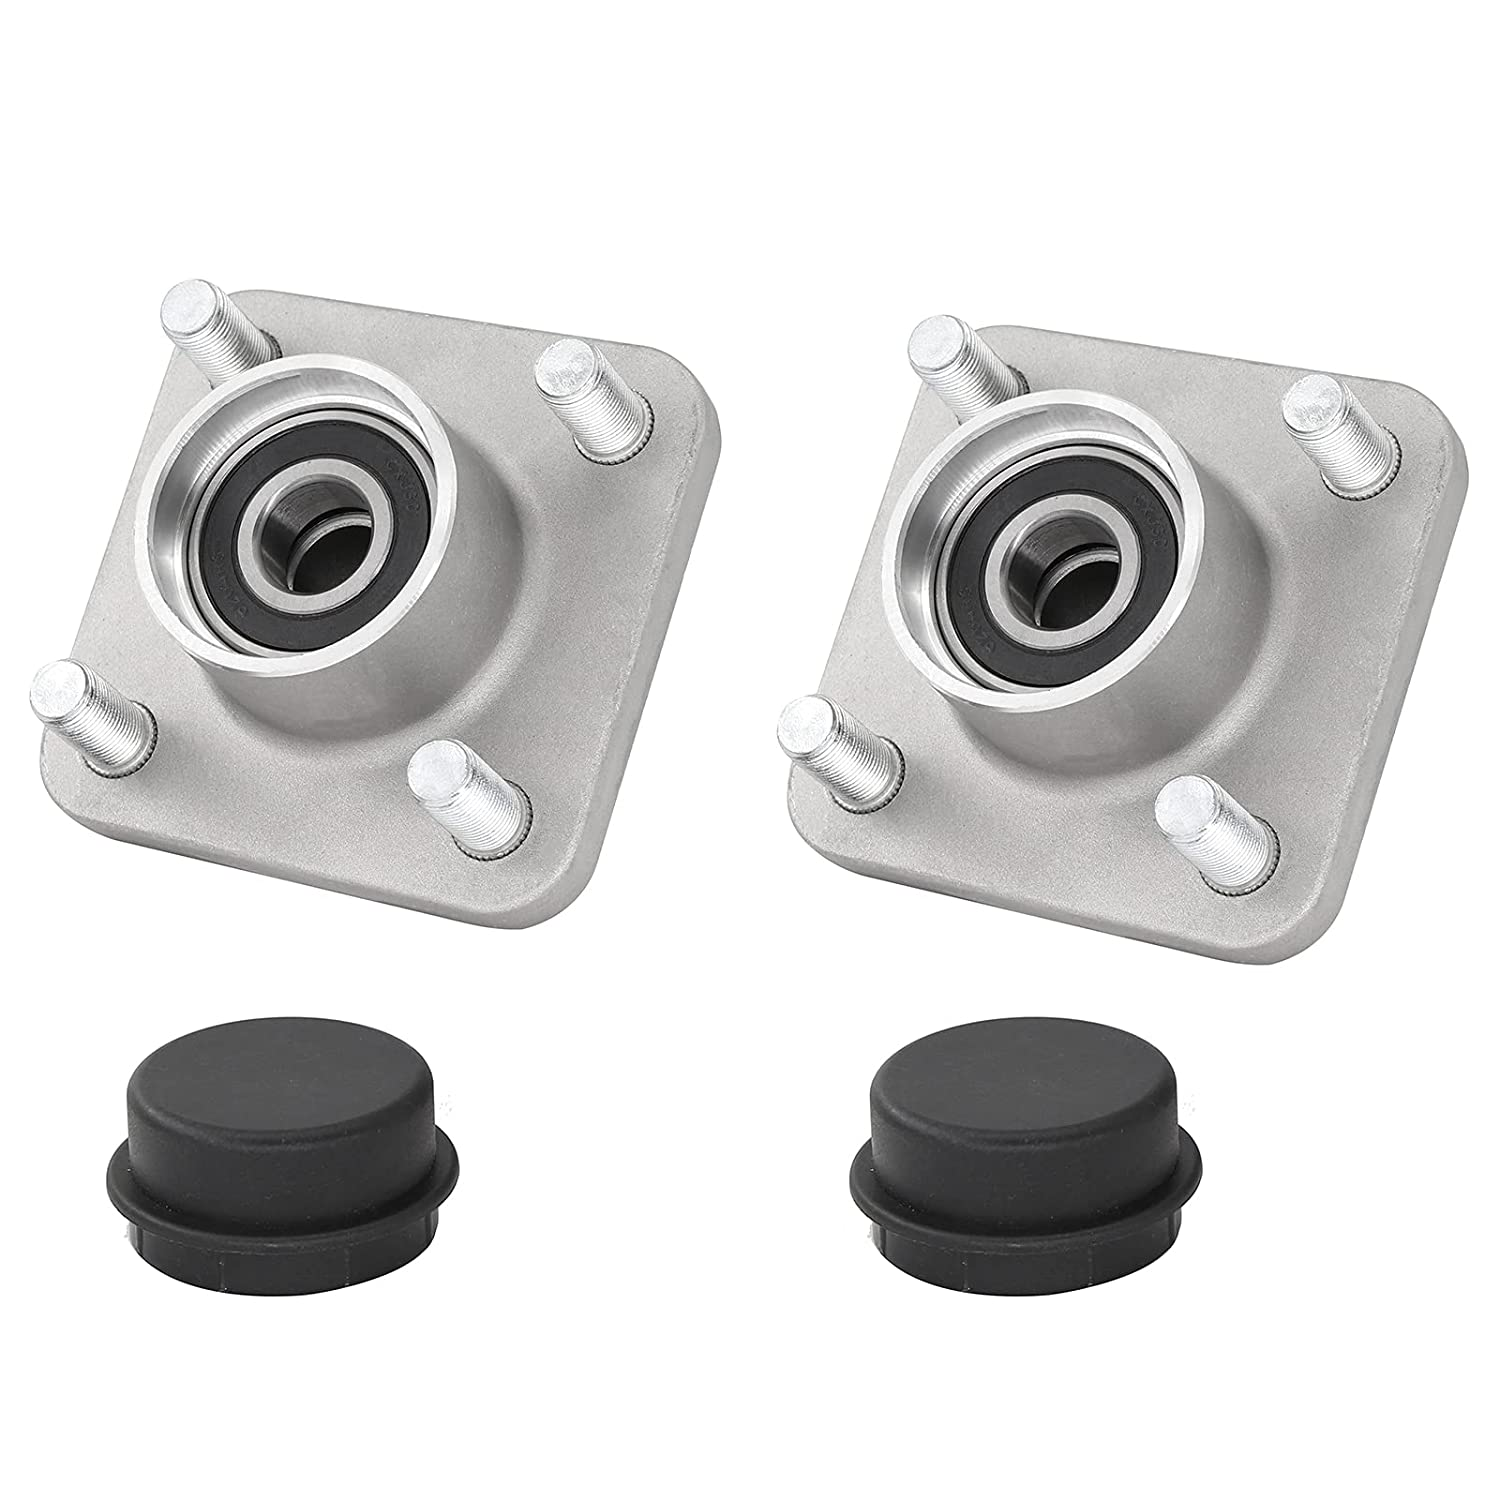 2Pcs Golf Cart Front Wheel Hub Max Cheap mail order specialty store 52% OFF Bearings for Assembly 2003+ Clu W